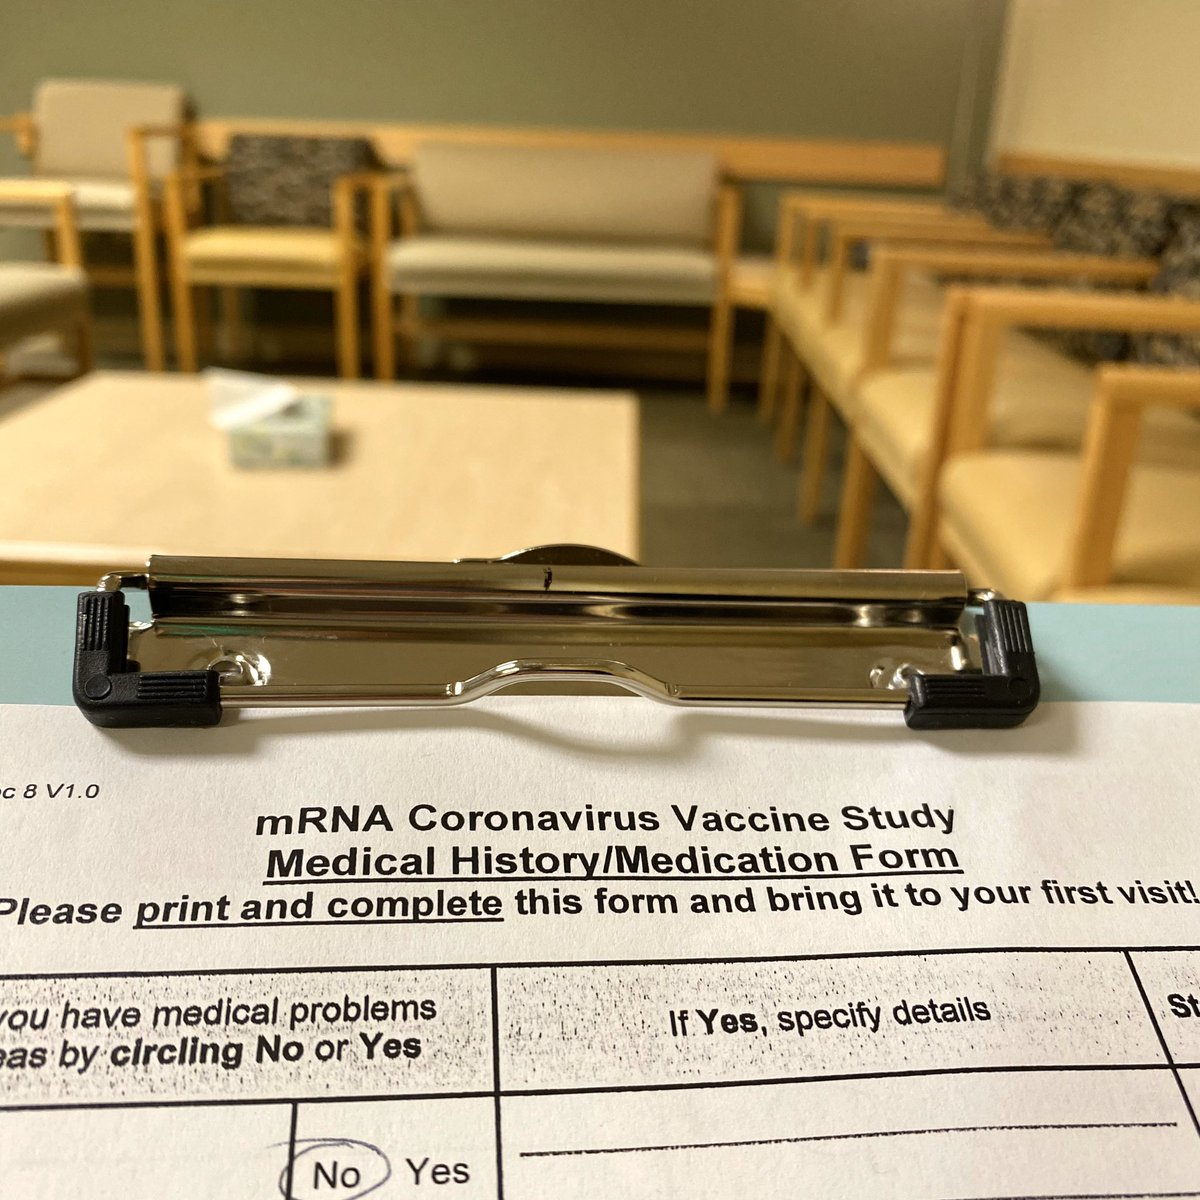 I've been admitted into the 1st COVID-19 vaccine trial.   I'm grateful for my health. For the 1000s of scientists who brought us here. For the team that developed this vaccine (@NIH, @moderna_tx, et al). For @KPWaResearch, and the nurse who came out of retirement to draw my blood